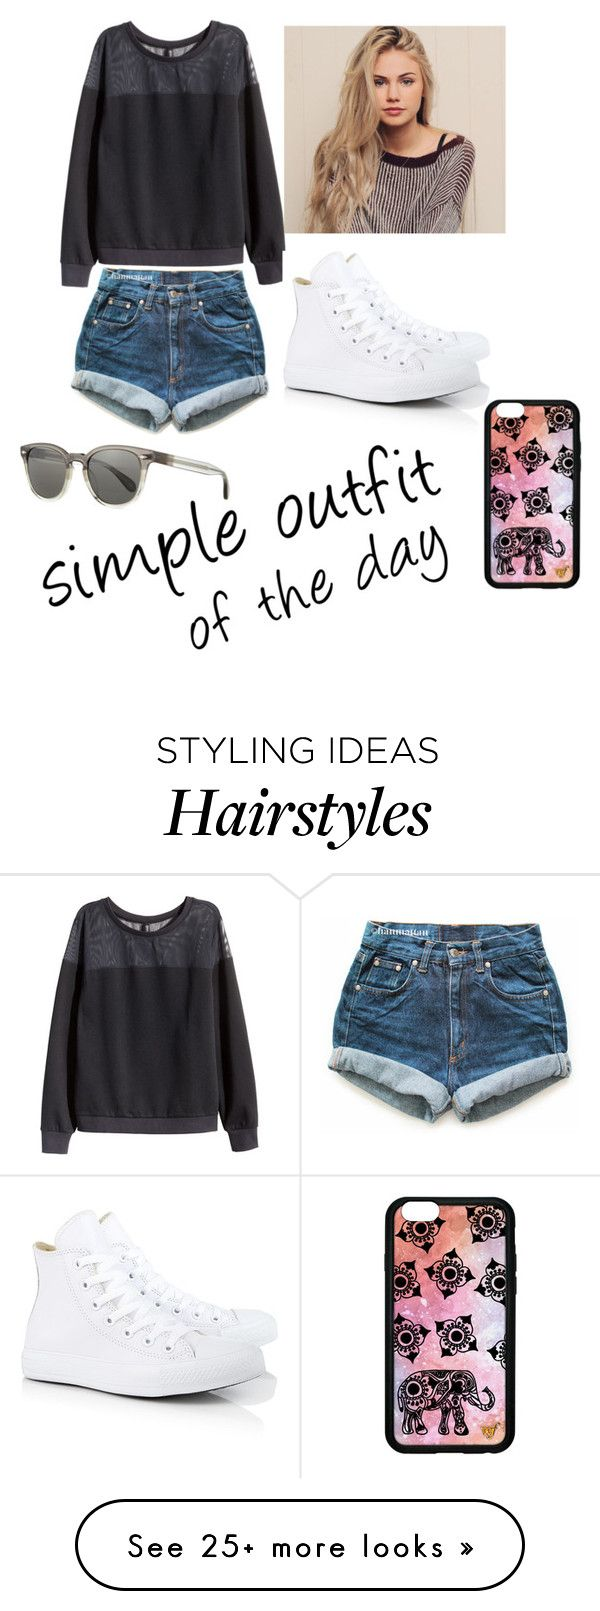 """Untitled #214"" by rileydance18 on Polyvore featuring mode, H&M, Levi's, Converse, Forever 21 en Oliver Peoples"